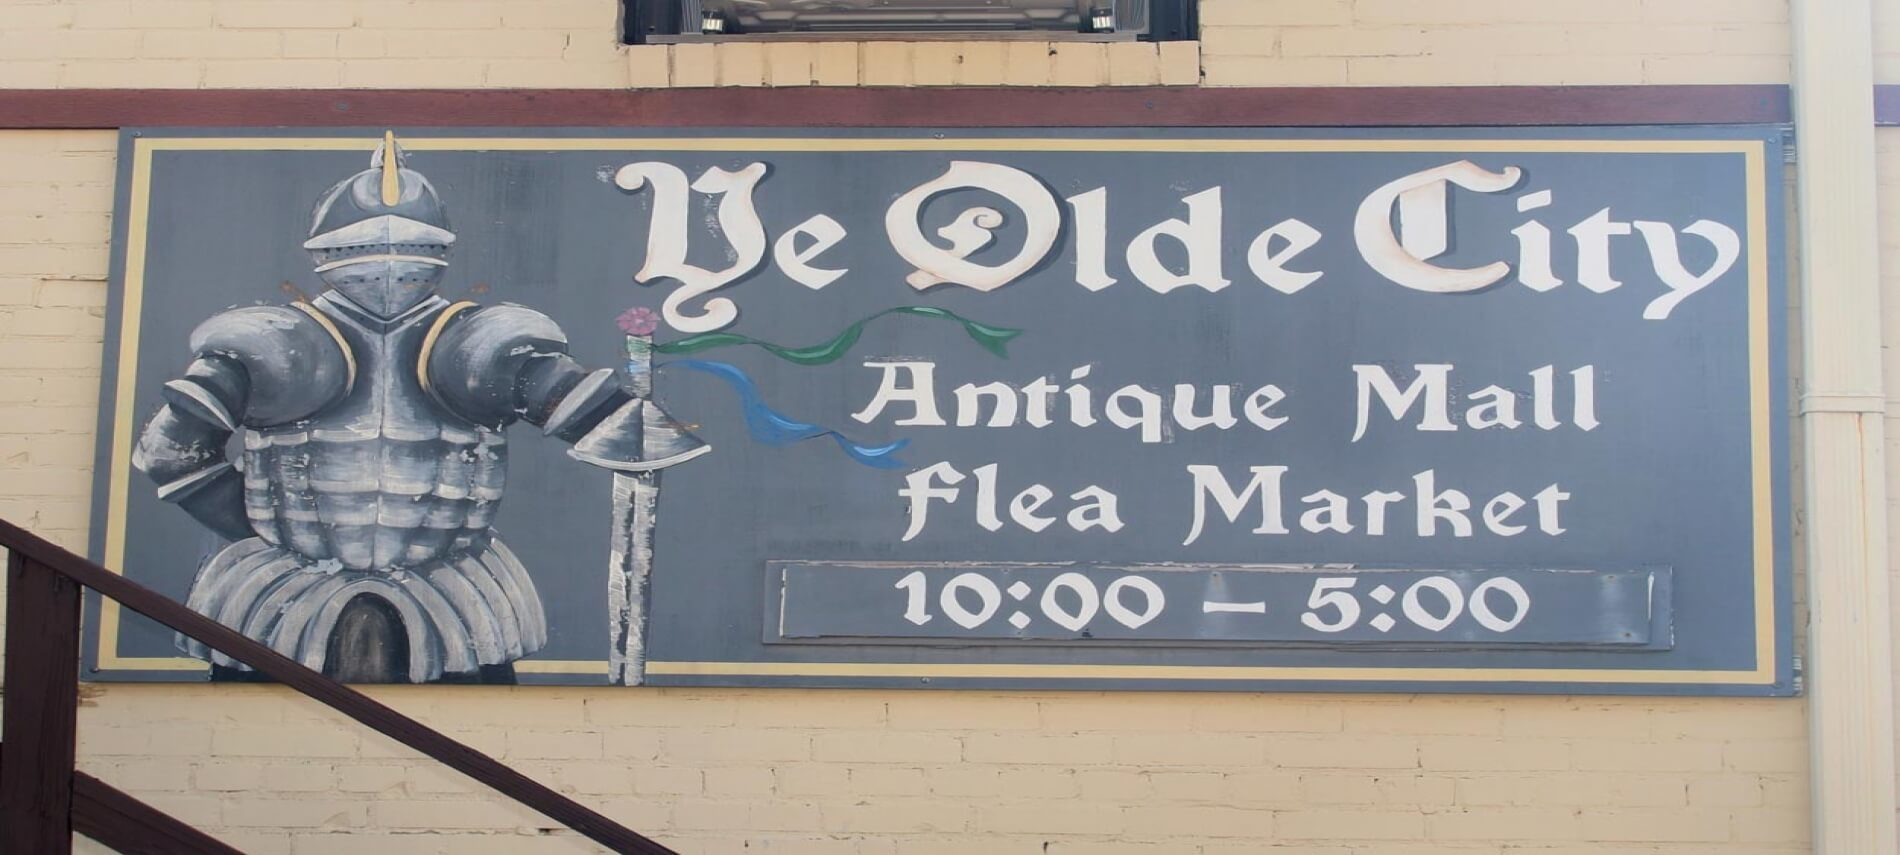 Ye Olde City Antique Mall Sign with hours 10 - 5